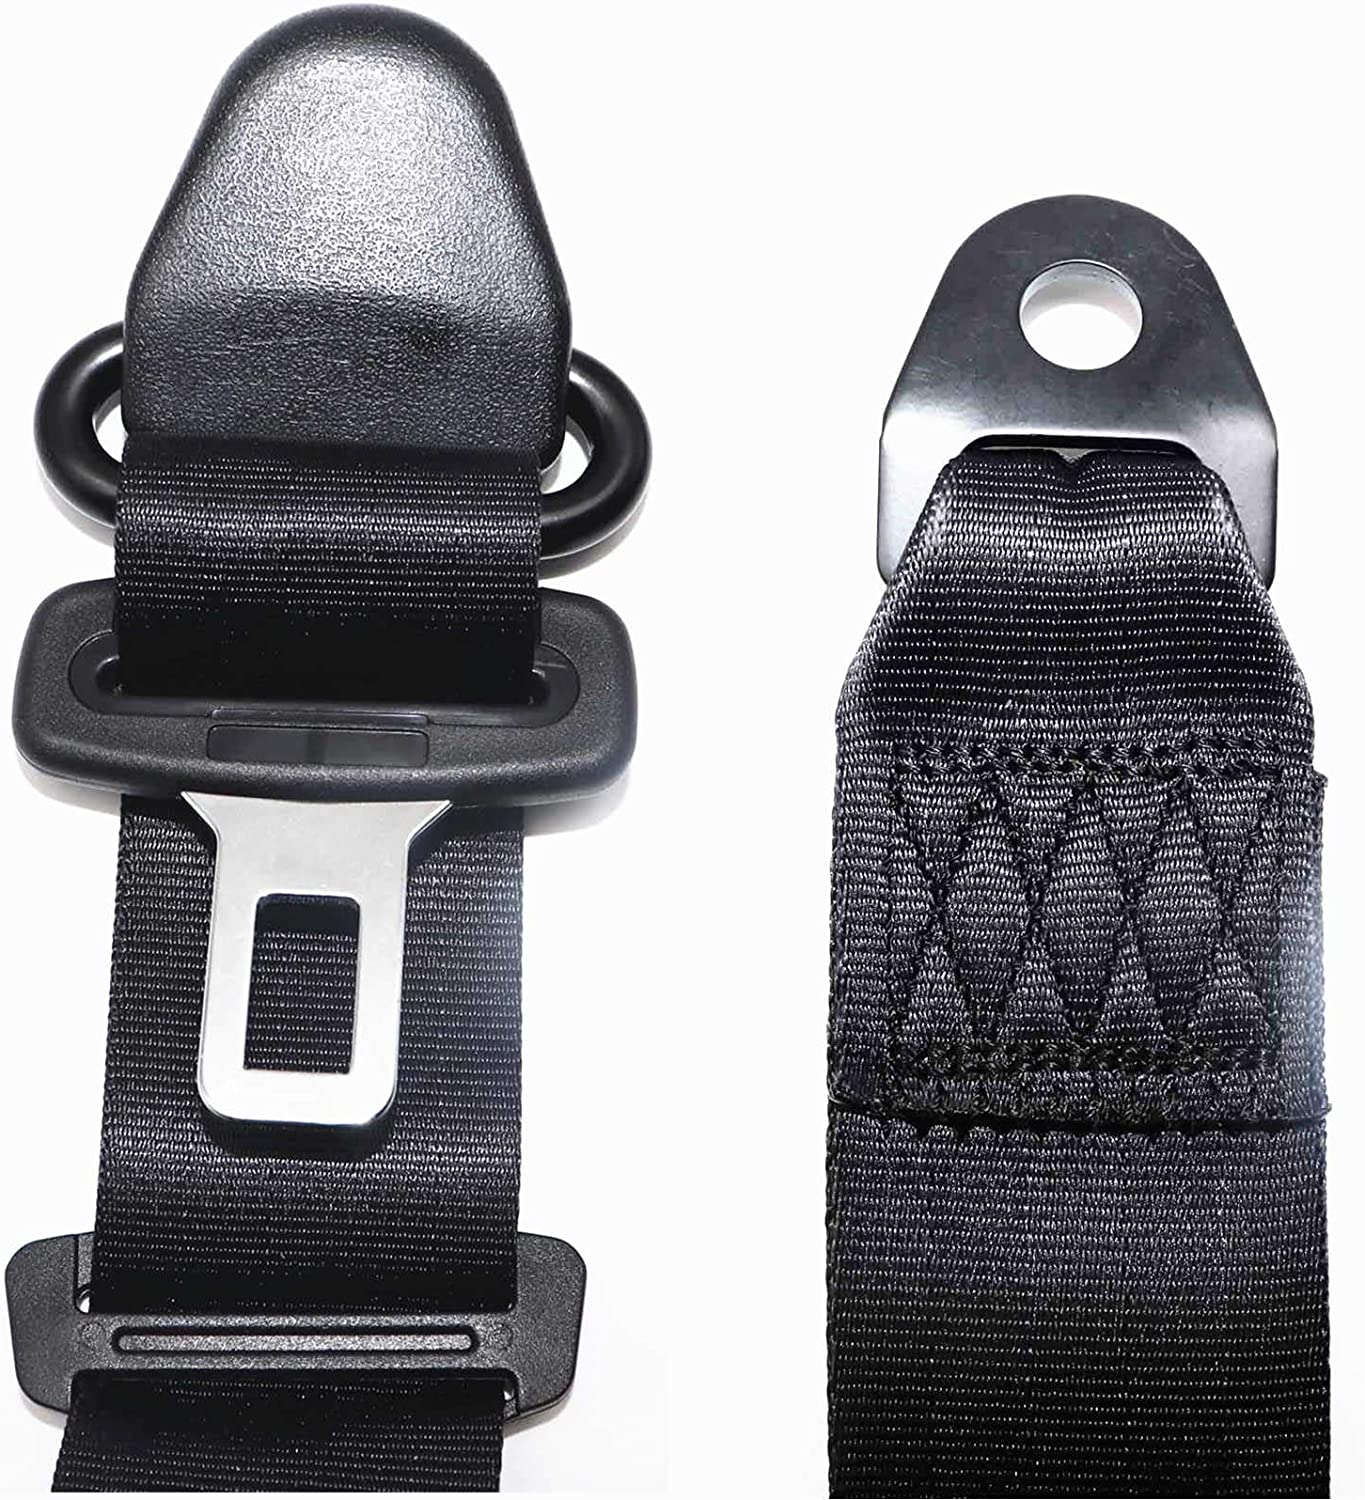 SecosAutoparts 2PCS Universal 3-Point Retractable Seat Belts Compatible with Jeep CJ YJ Wrangler 1982-1995 Three-Point universal Seat Belt for Kart Car Truck